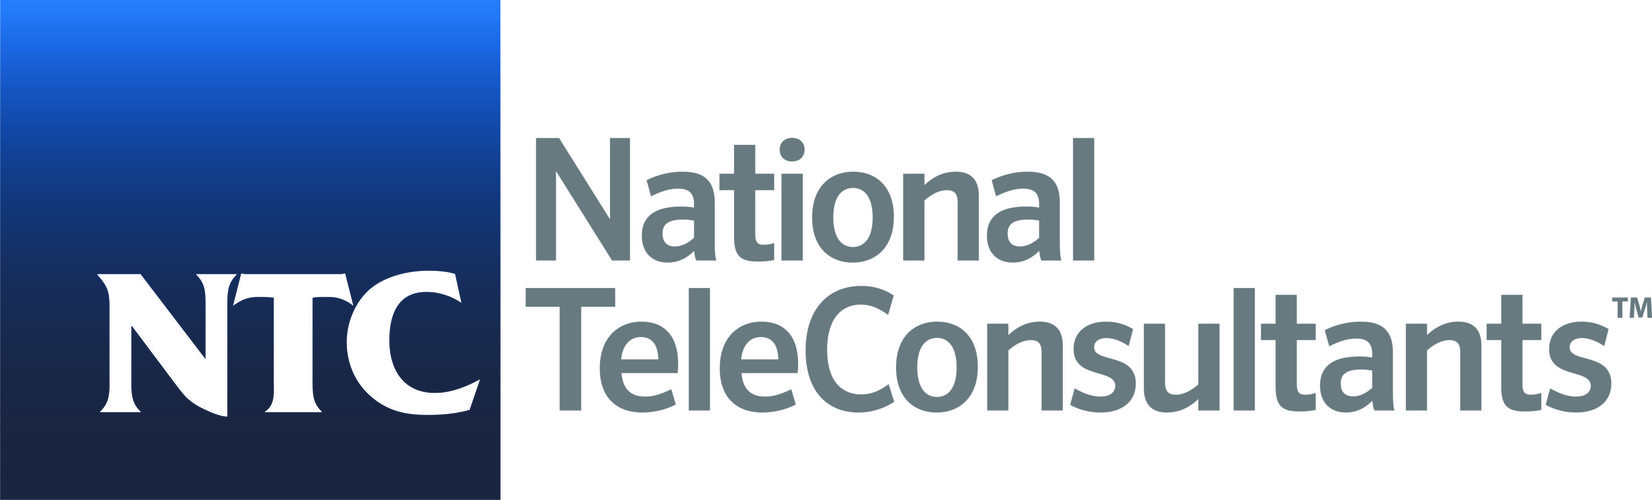 NTC - National TeleConsultants